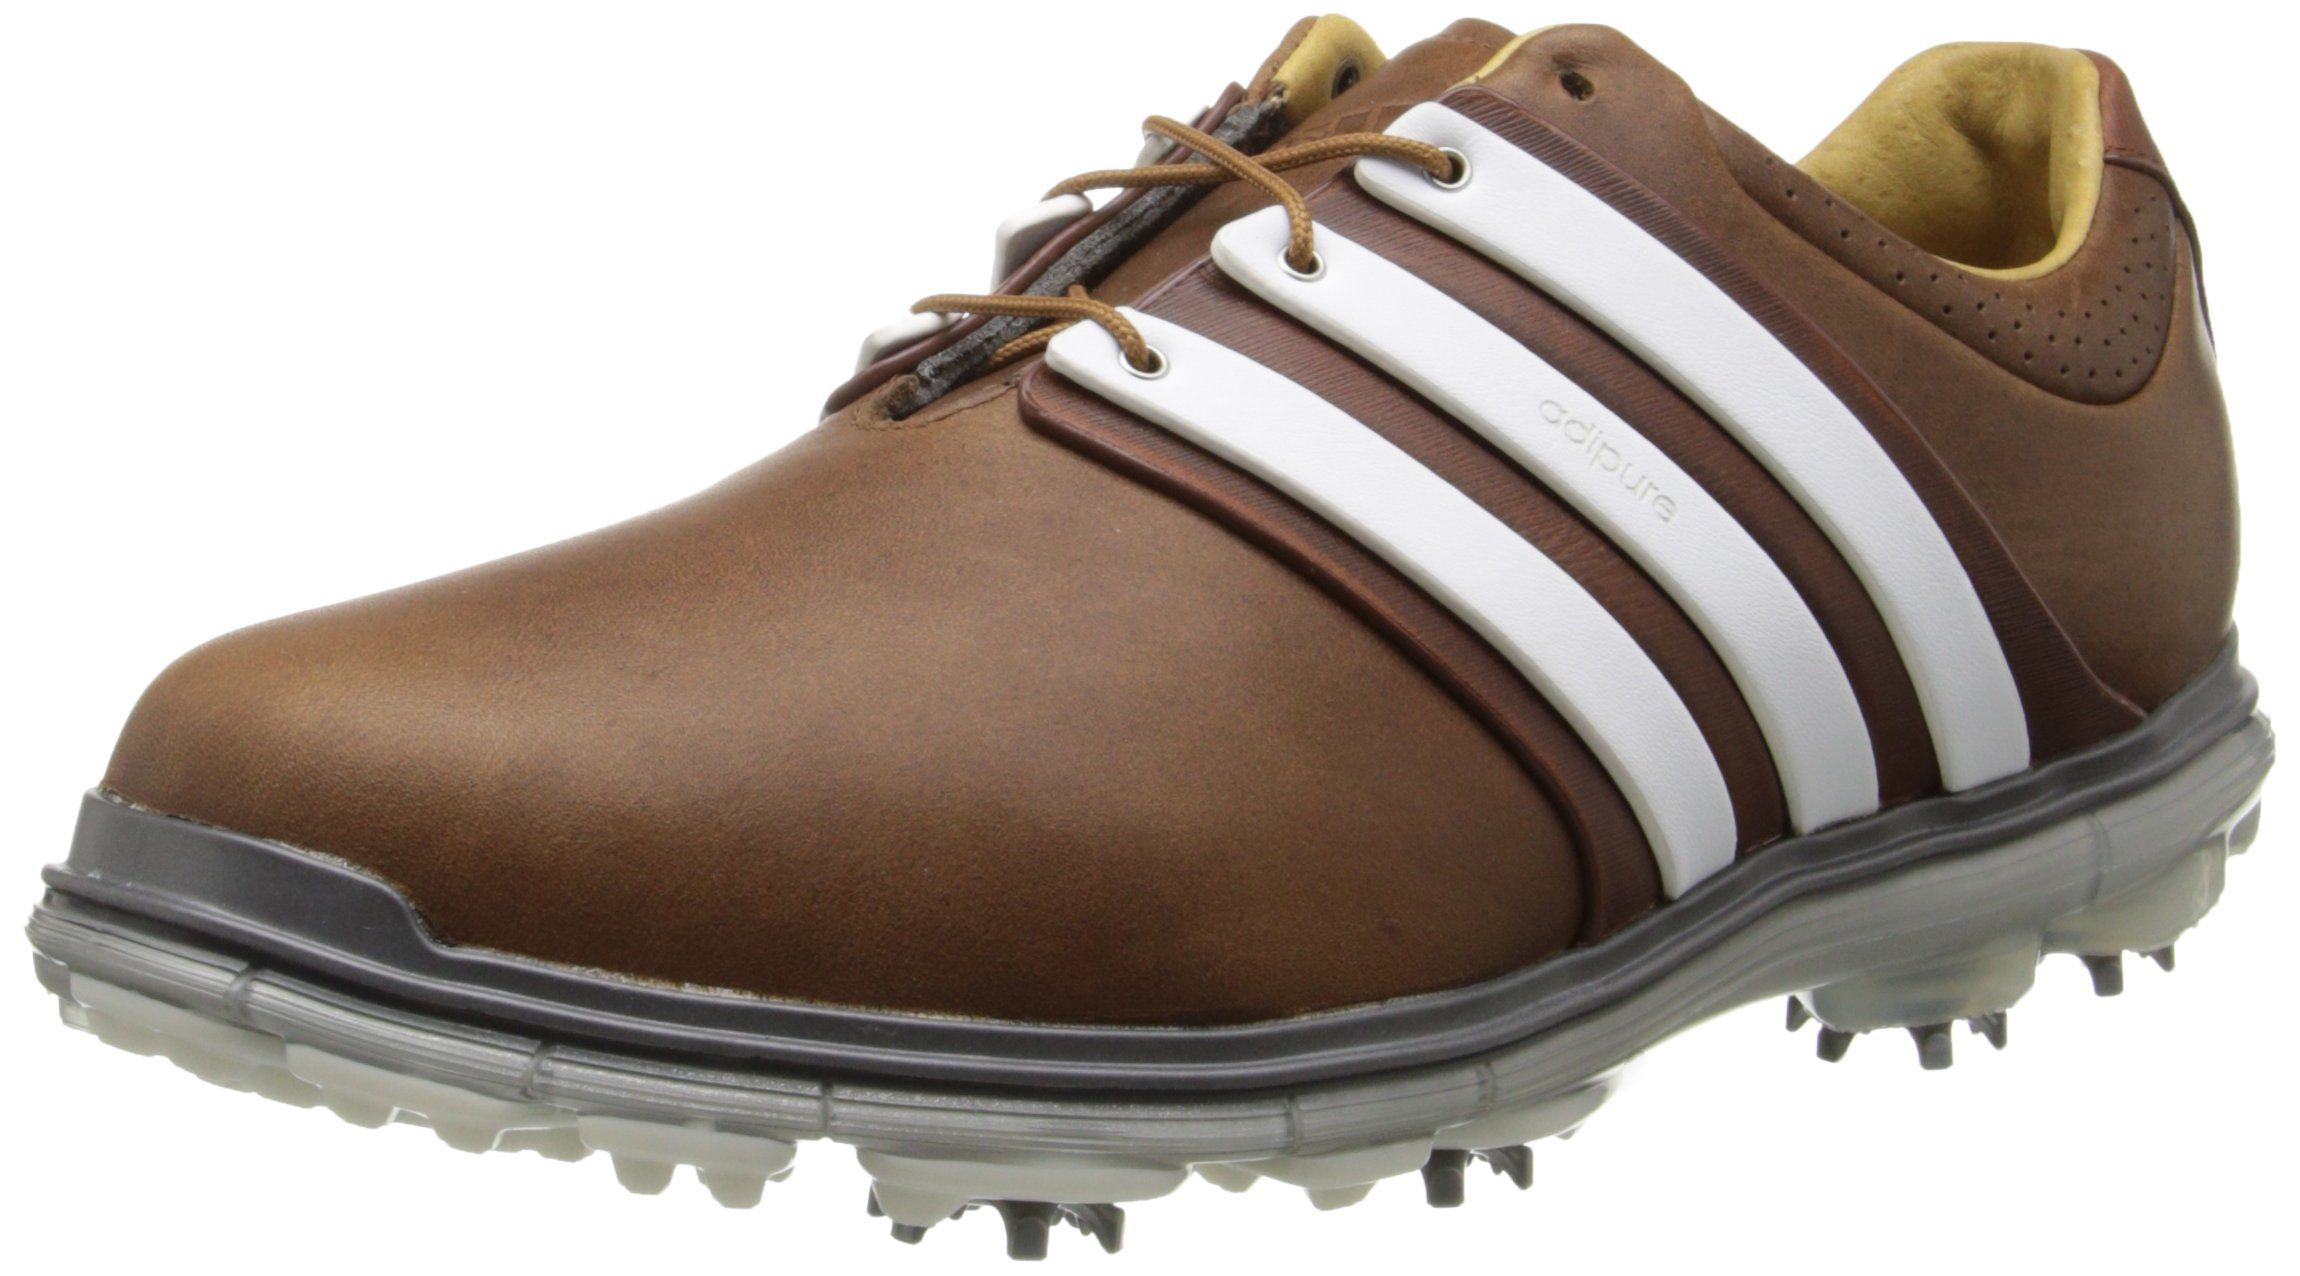 adidas Men s Pure 360 LTD Golf Shoe Tan Brown Tour White Silver Metallic